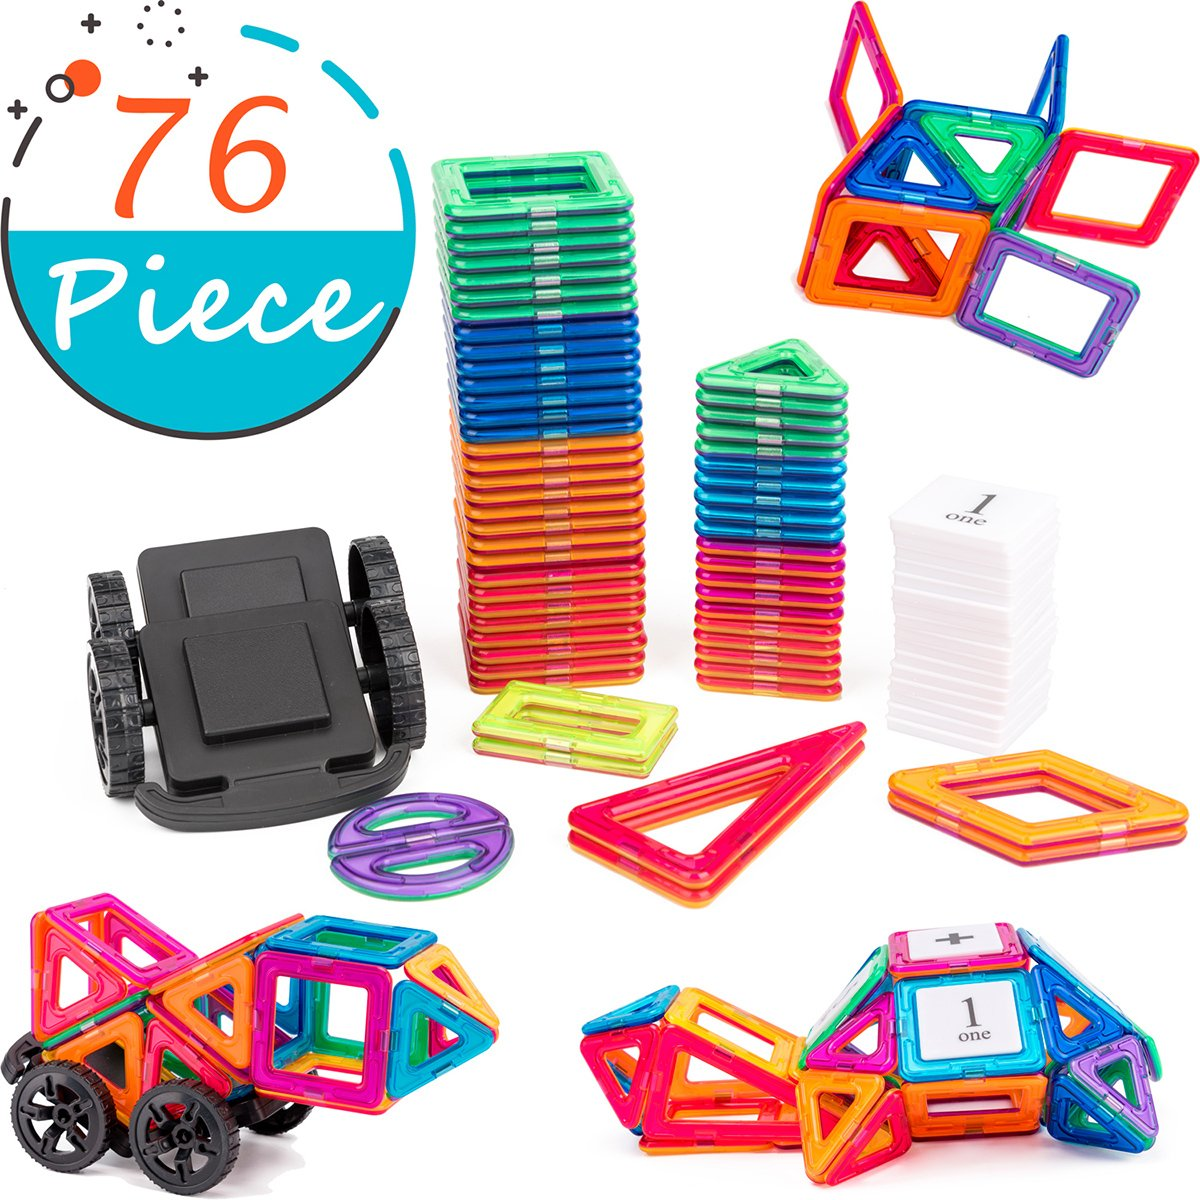 cossy Magnet Tiles Building Block, 76 PCs Magnetic Stick and Stack Set for Girls and Boys, Perfect STEM Educational Toys for Kids Children by cossy